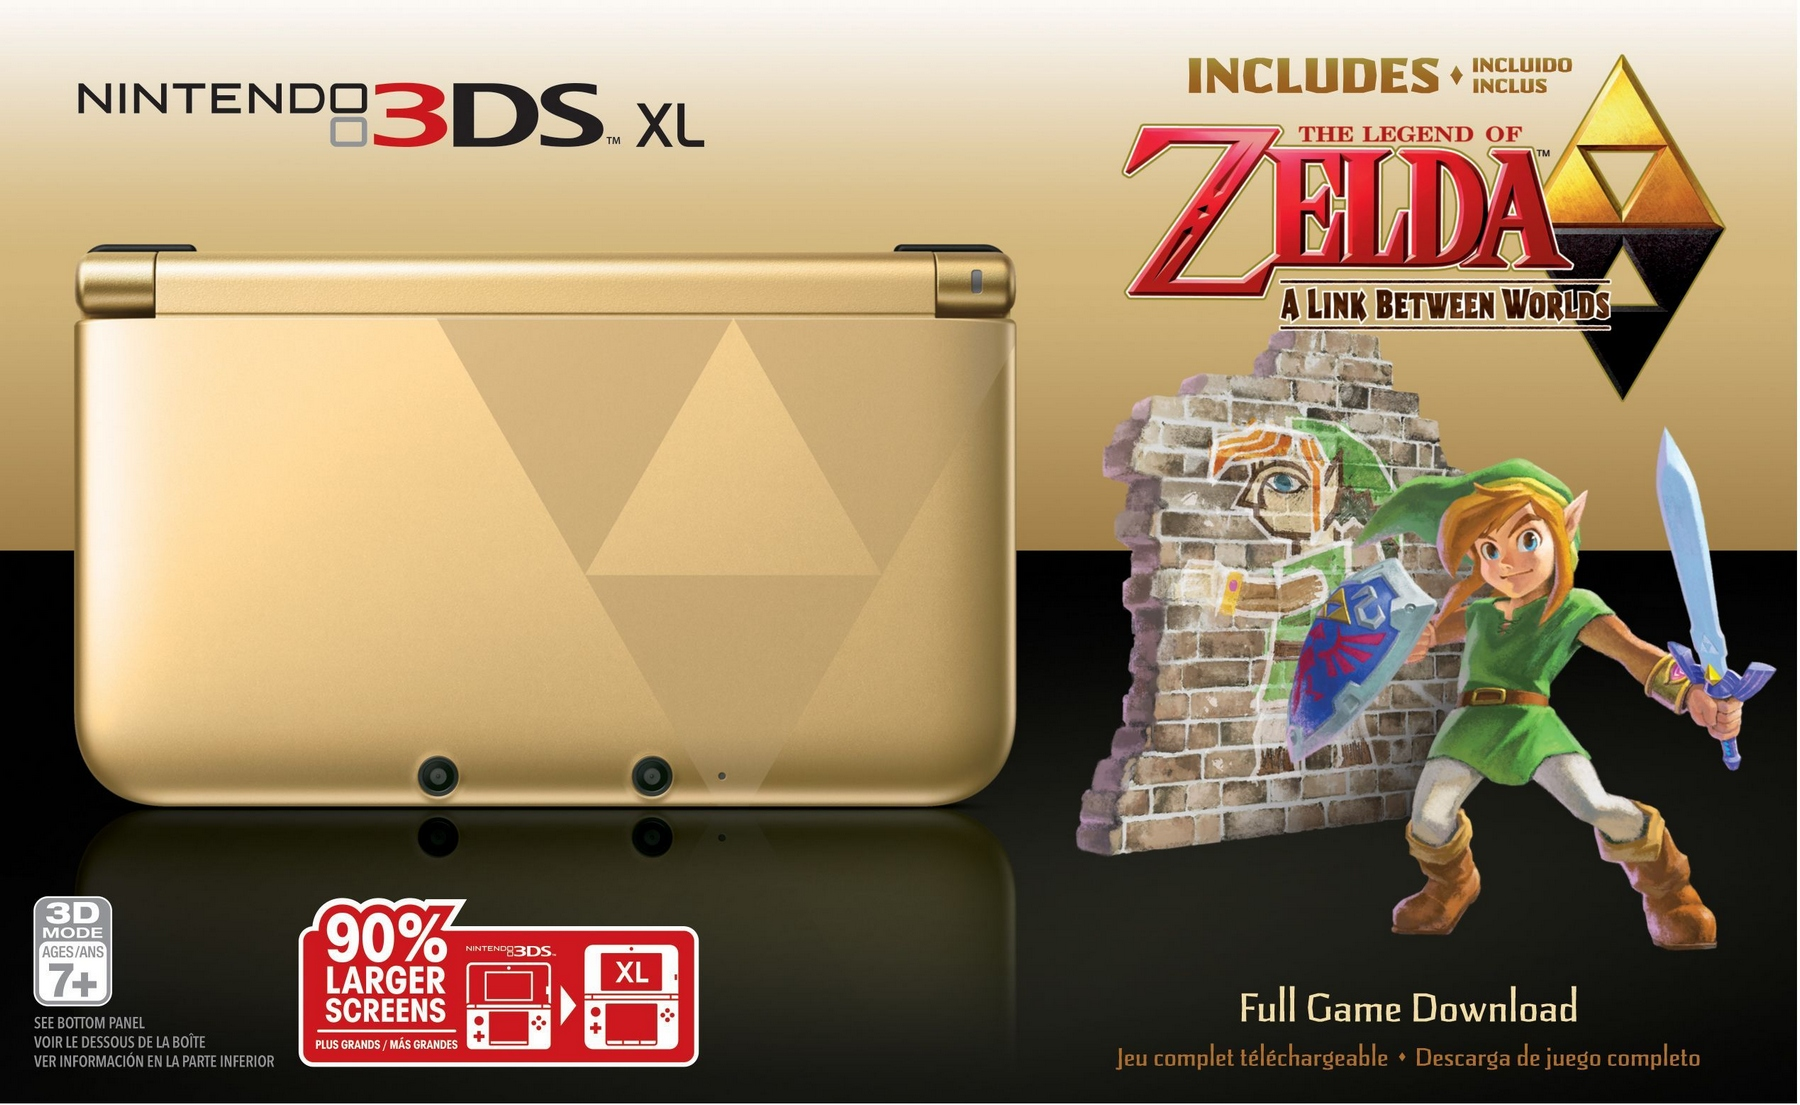 Confirmed-Zelda-ALBW-gold-DSXL-bundle-coming-to-North-America-and-Europe-on-November-th-wallpaper-wp424661-1